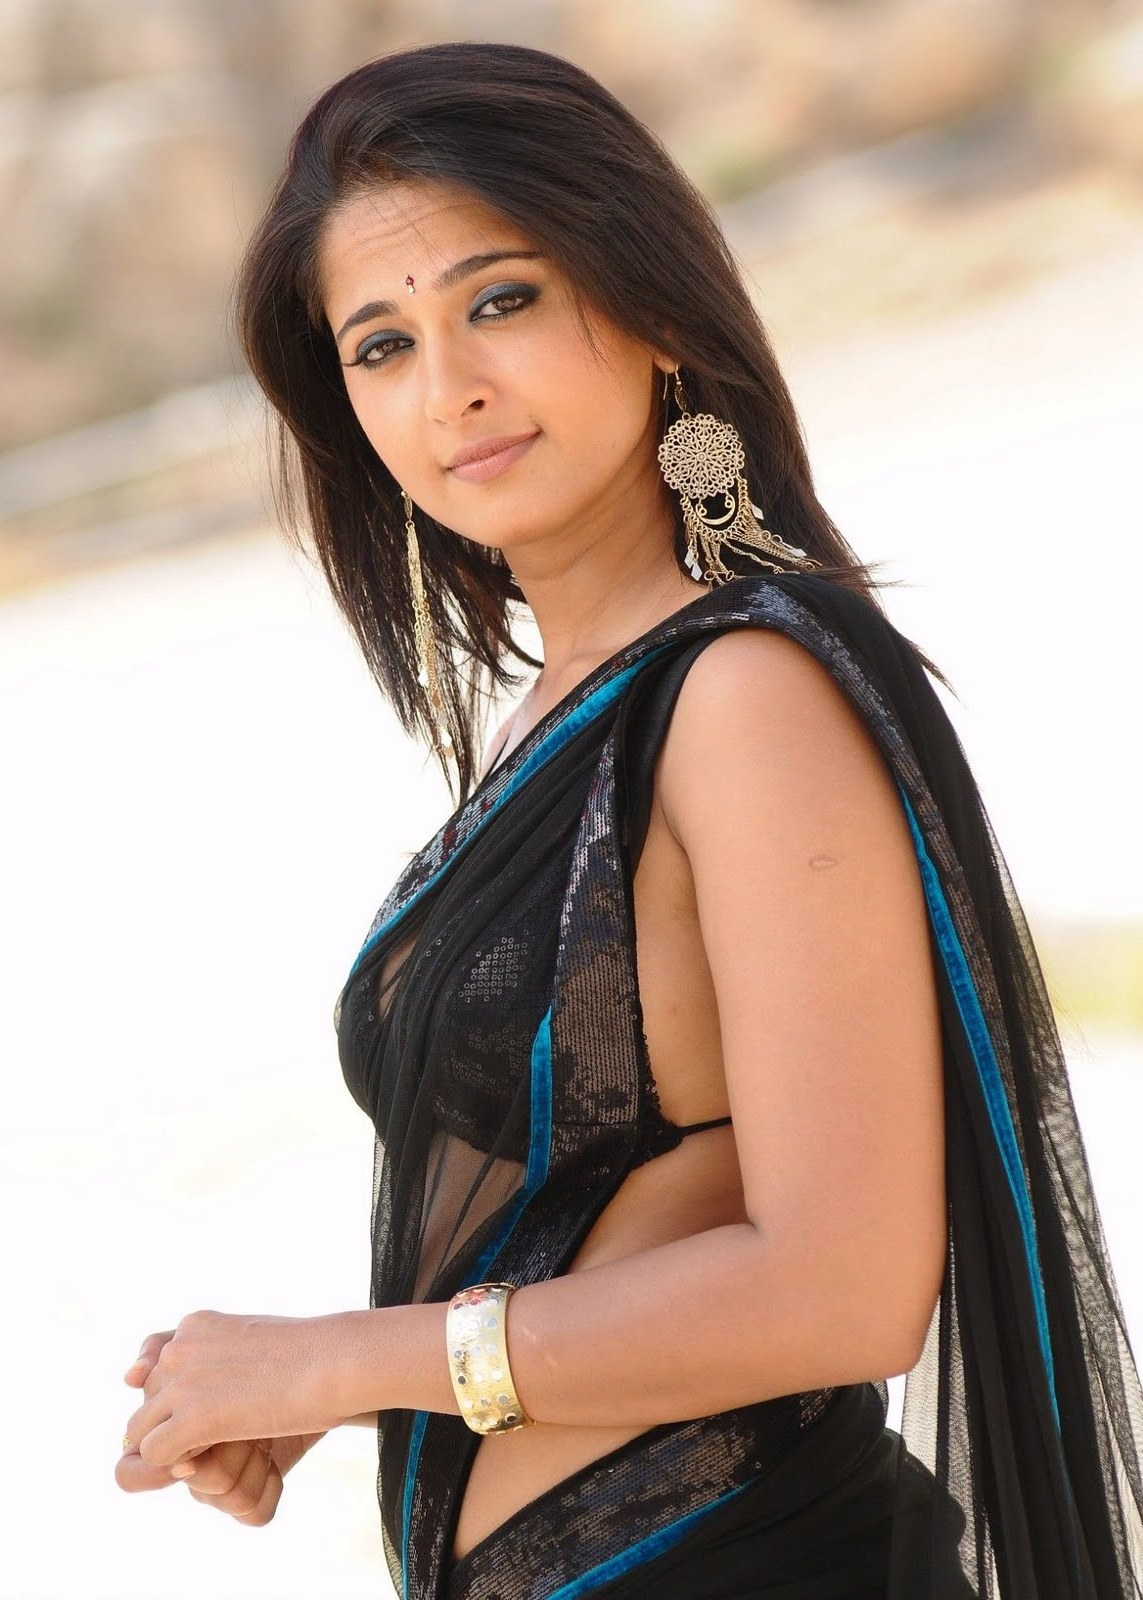 Singam 3 Hd Wallpaper Anushka Shetty Pictures Hot High Resolution Pictures